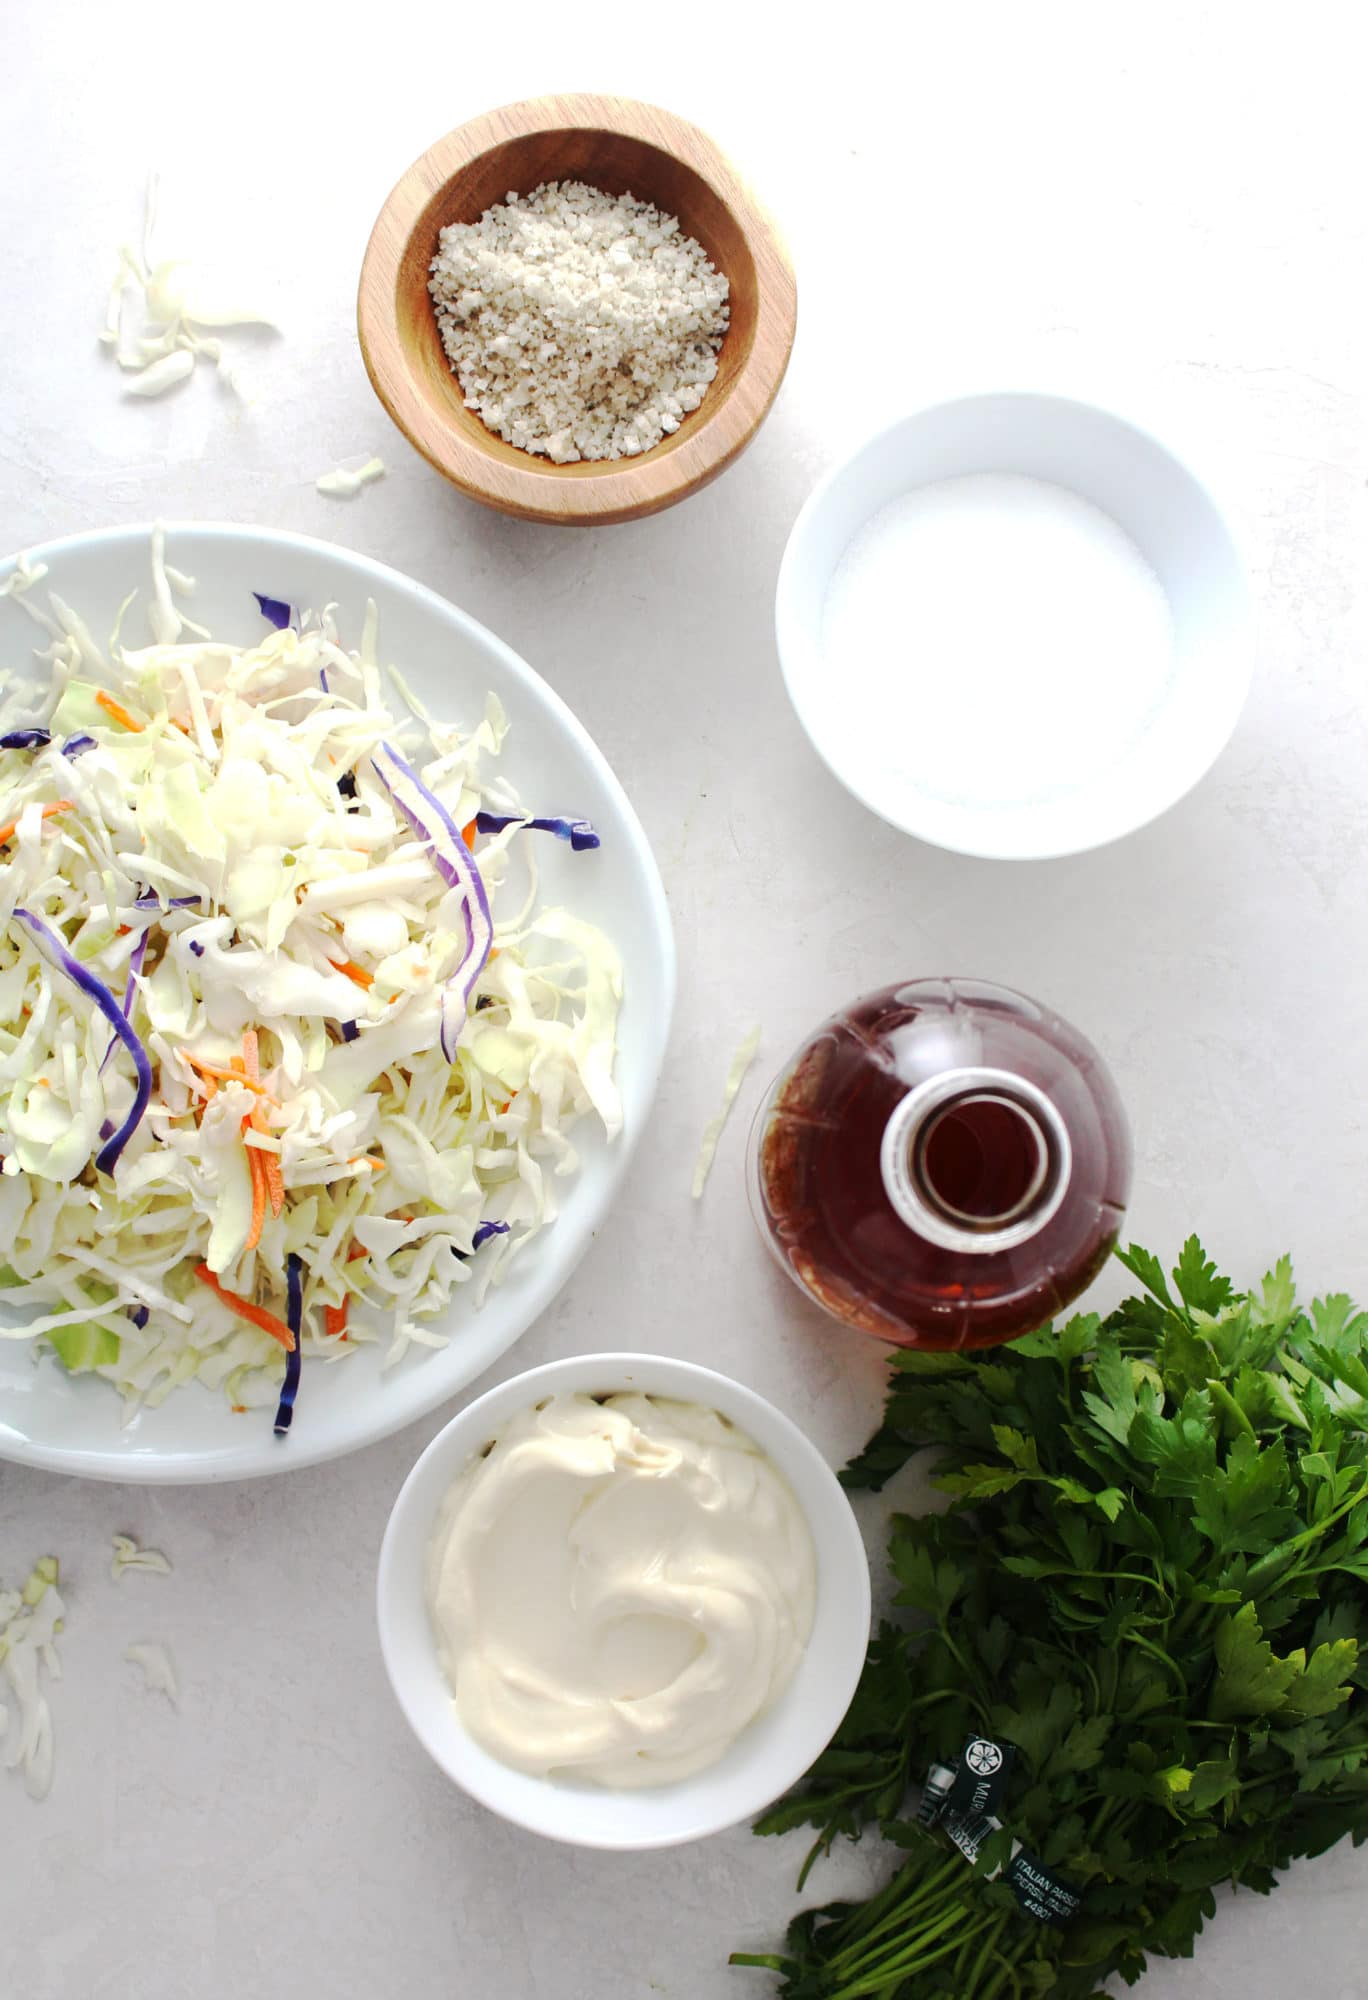 ingredients for sweet slaw